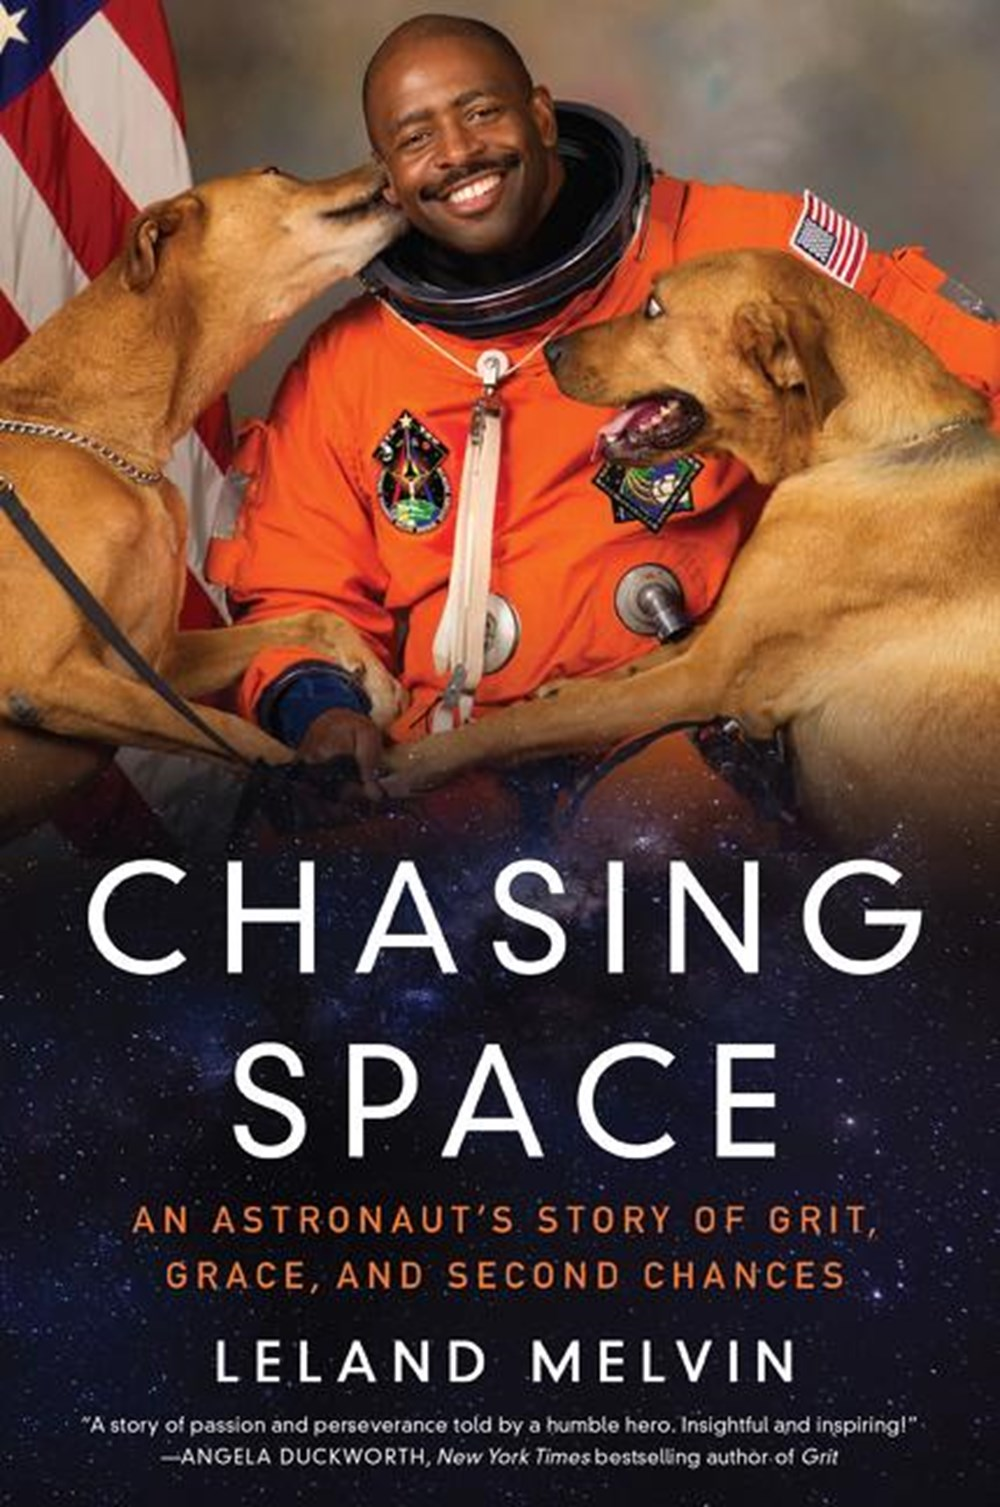 Chasing Space An Astronaut's Story of Grit, Grace, and Second Chances